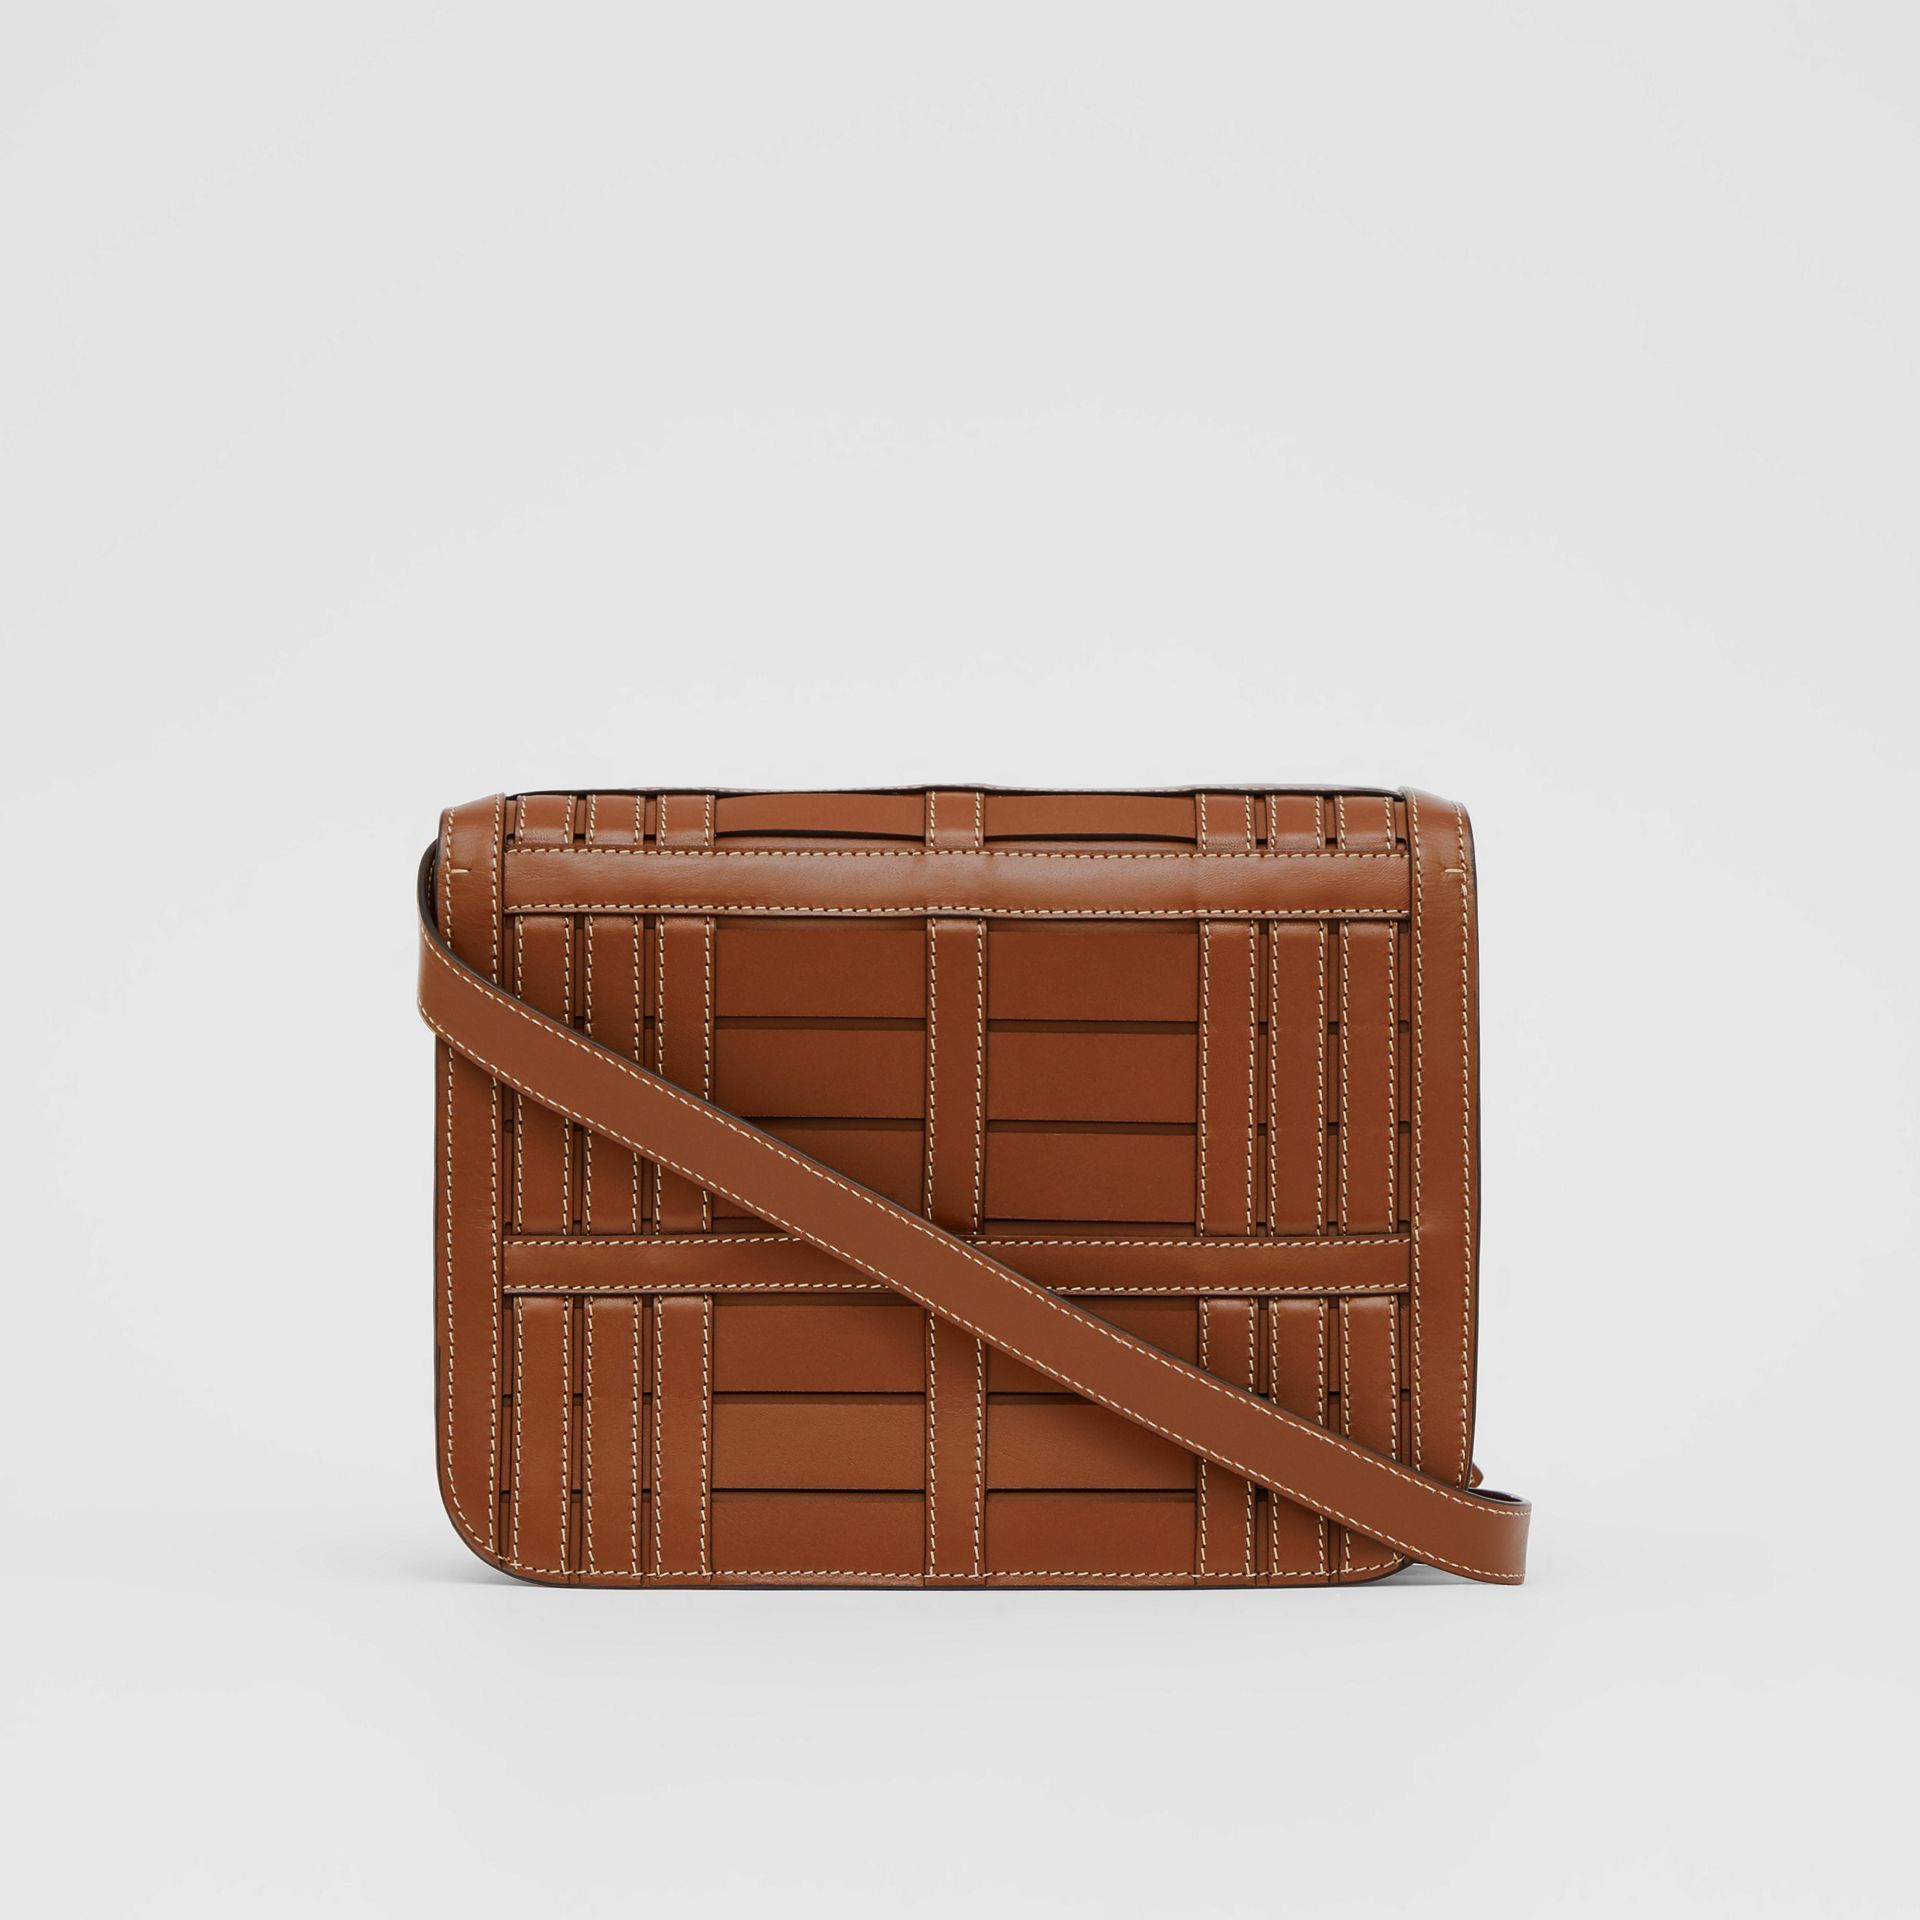 Medium Woven Leather TB Bag in Tan - Women | Burberry Canada - gallery image 7